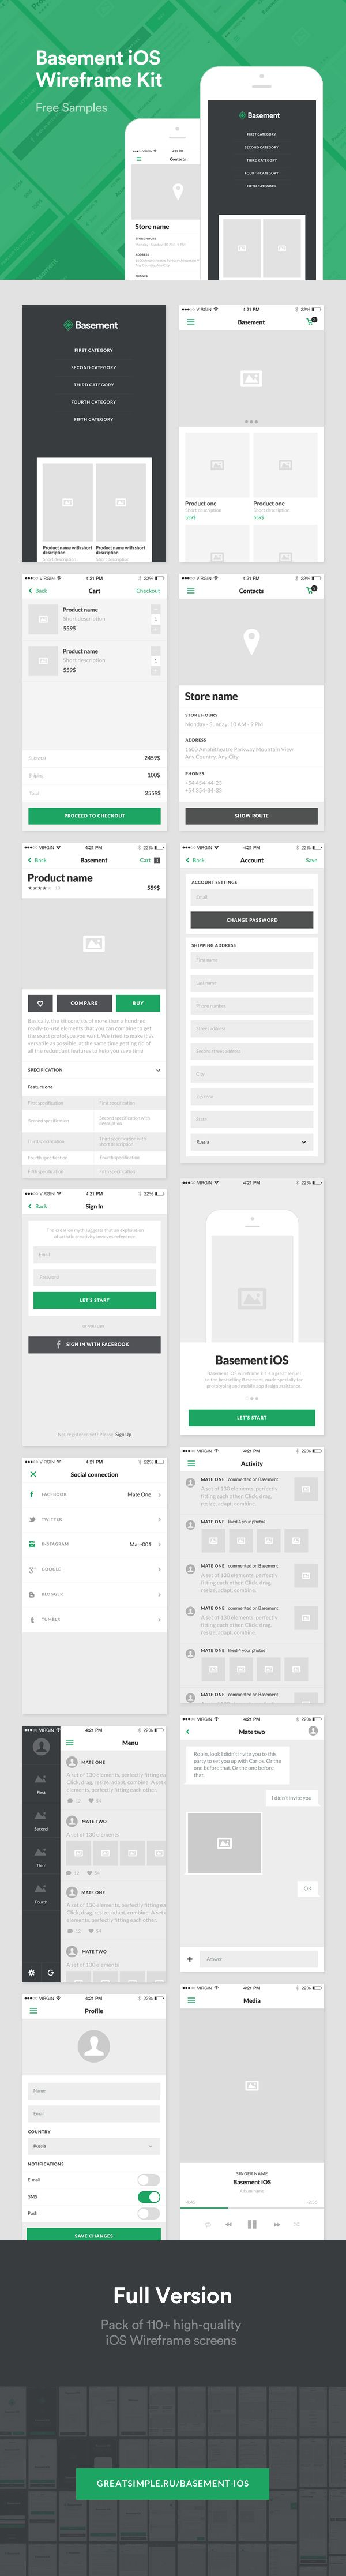 Let prototype and design your next iOS app or mobile website in a quick and effortless way with this well crafted UI wireframe kit. The Kit contains an assortment of eCommerce, and social media screens available for both Photoshop and Sketch. Check out and download for FREE!